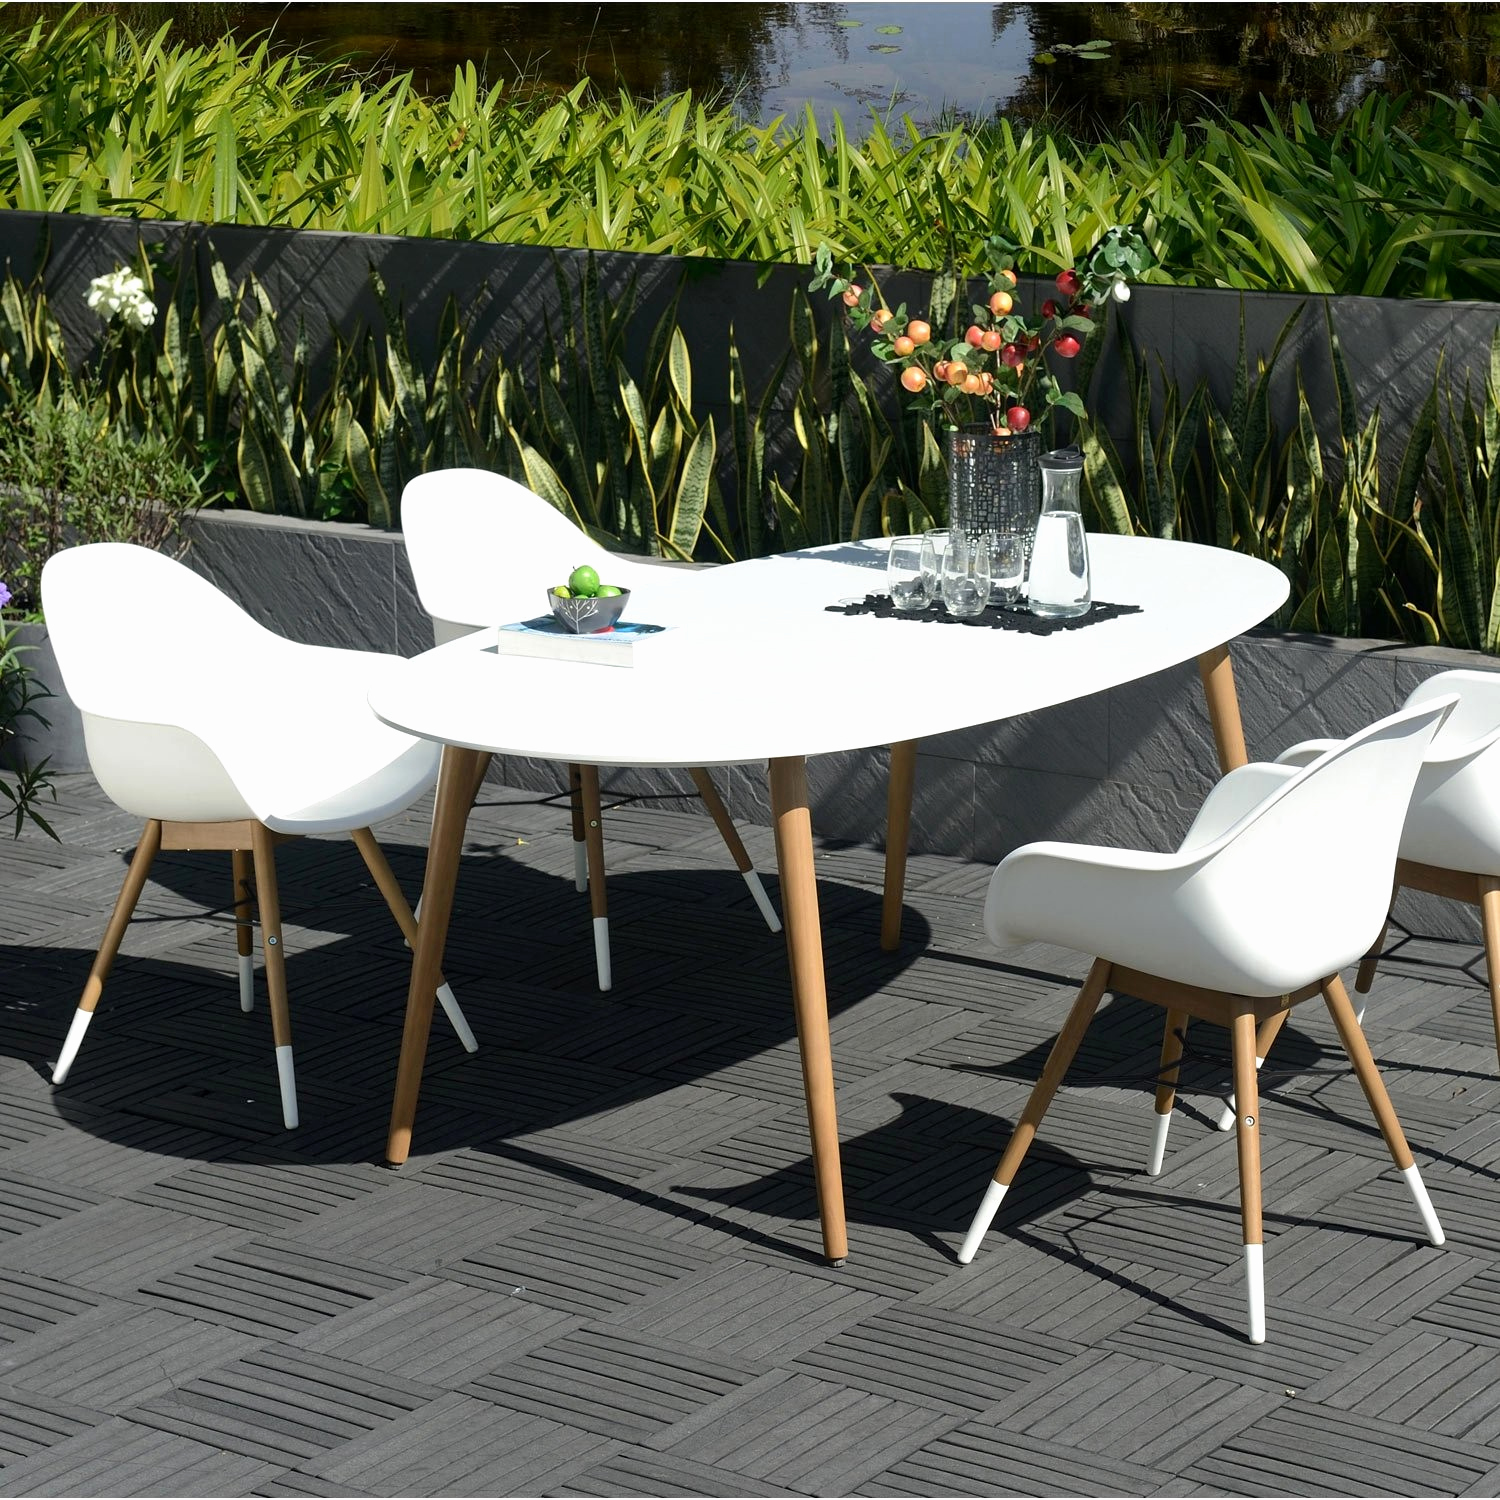 Table En Pierre Exterieur Frais Carrelage Terrasse Leroy Merlin Of 39 Best Of Table En Pierre Exterieur